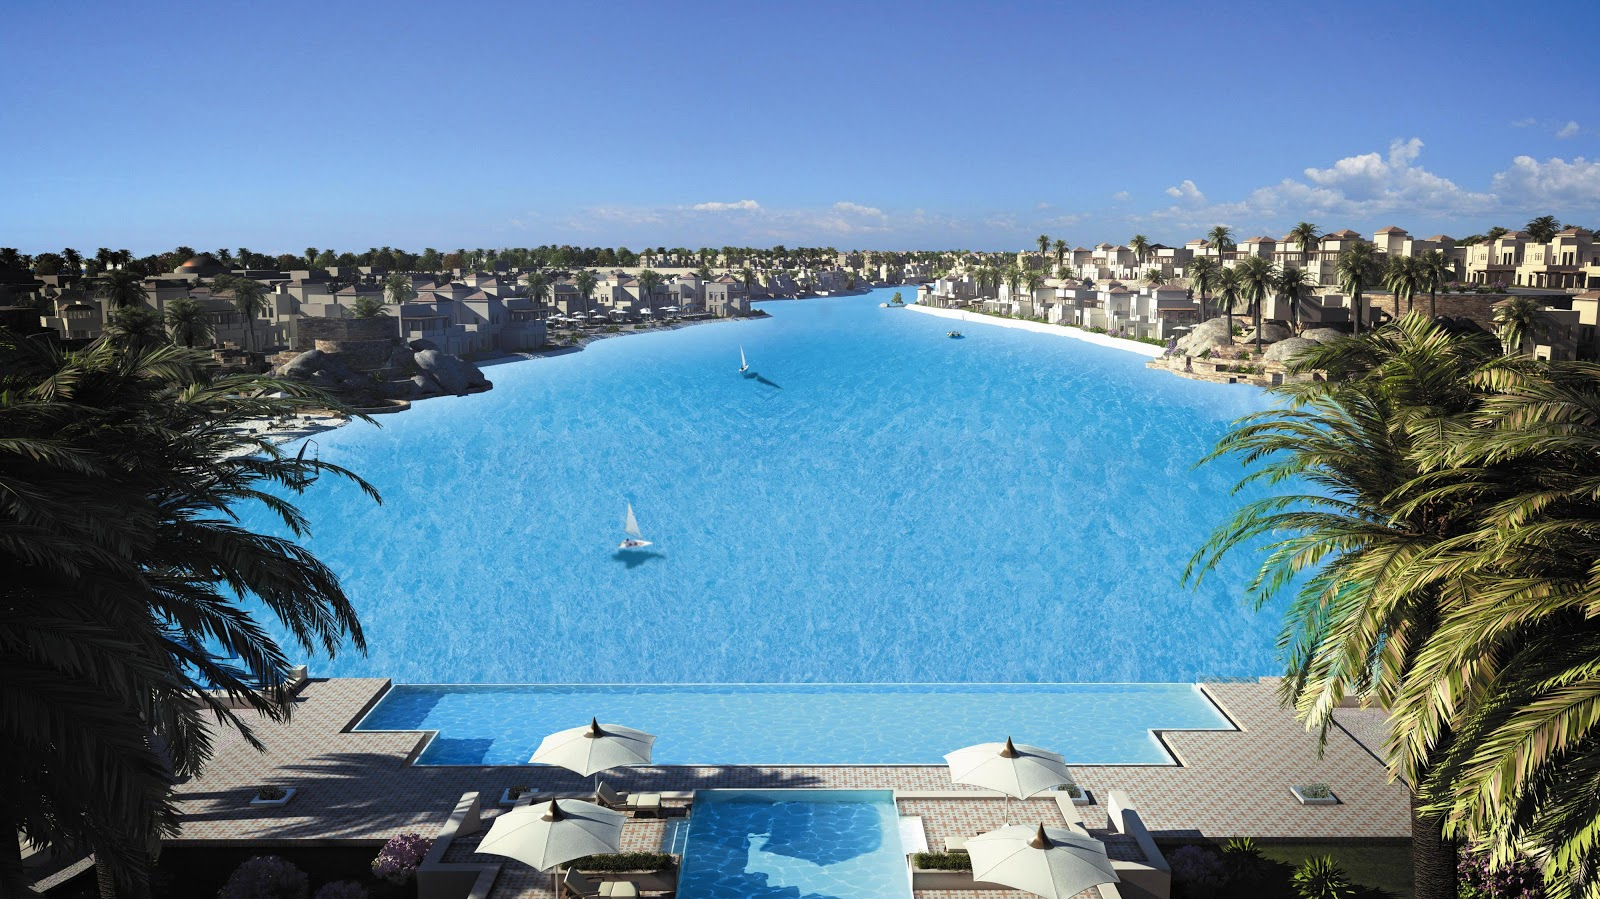 Sharm El Sheikh Egypt  city photos gallery : Egypt Travel News: World's Largest Swimming Pool in Egypt